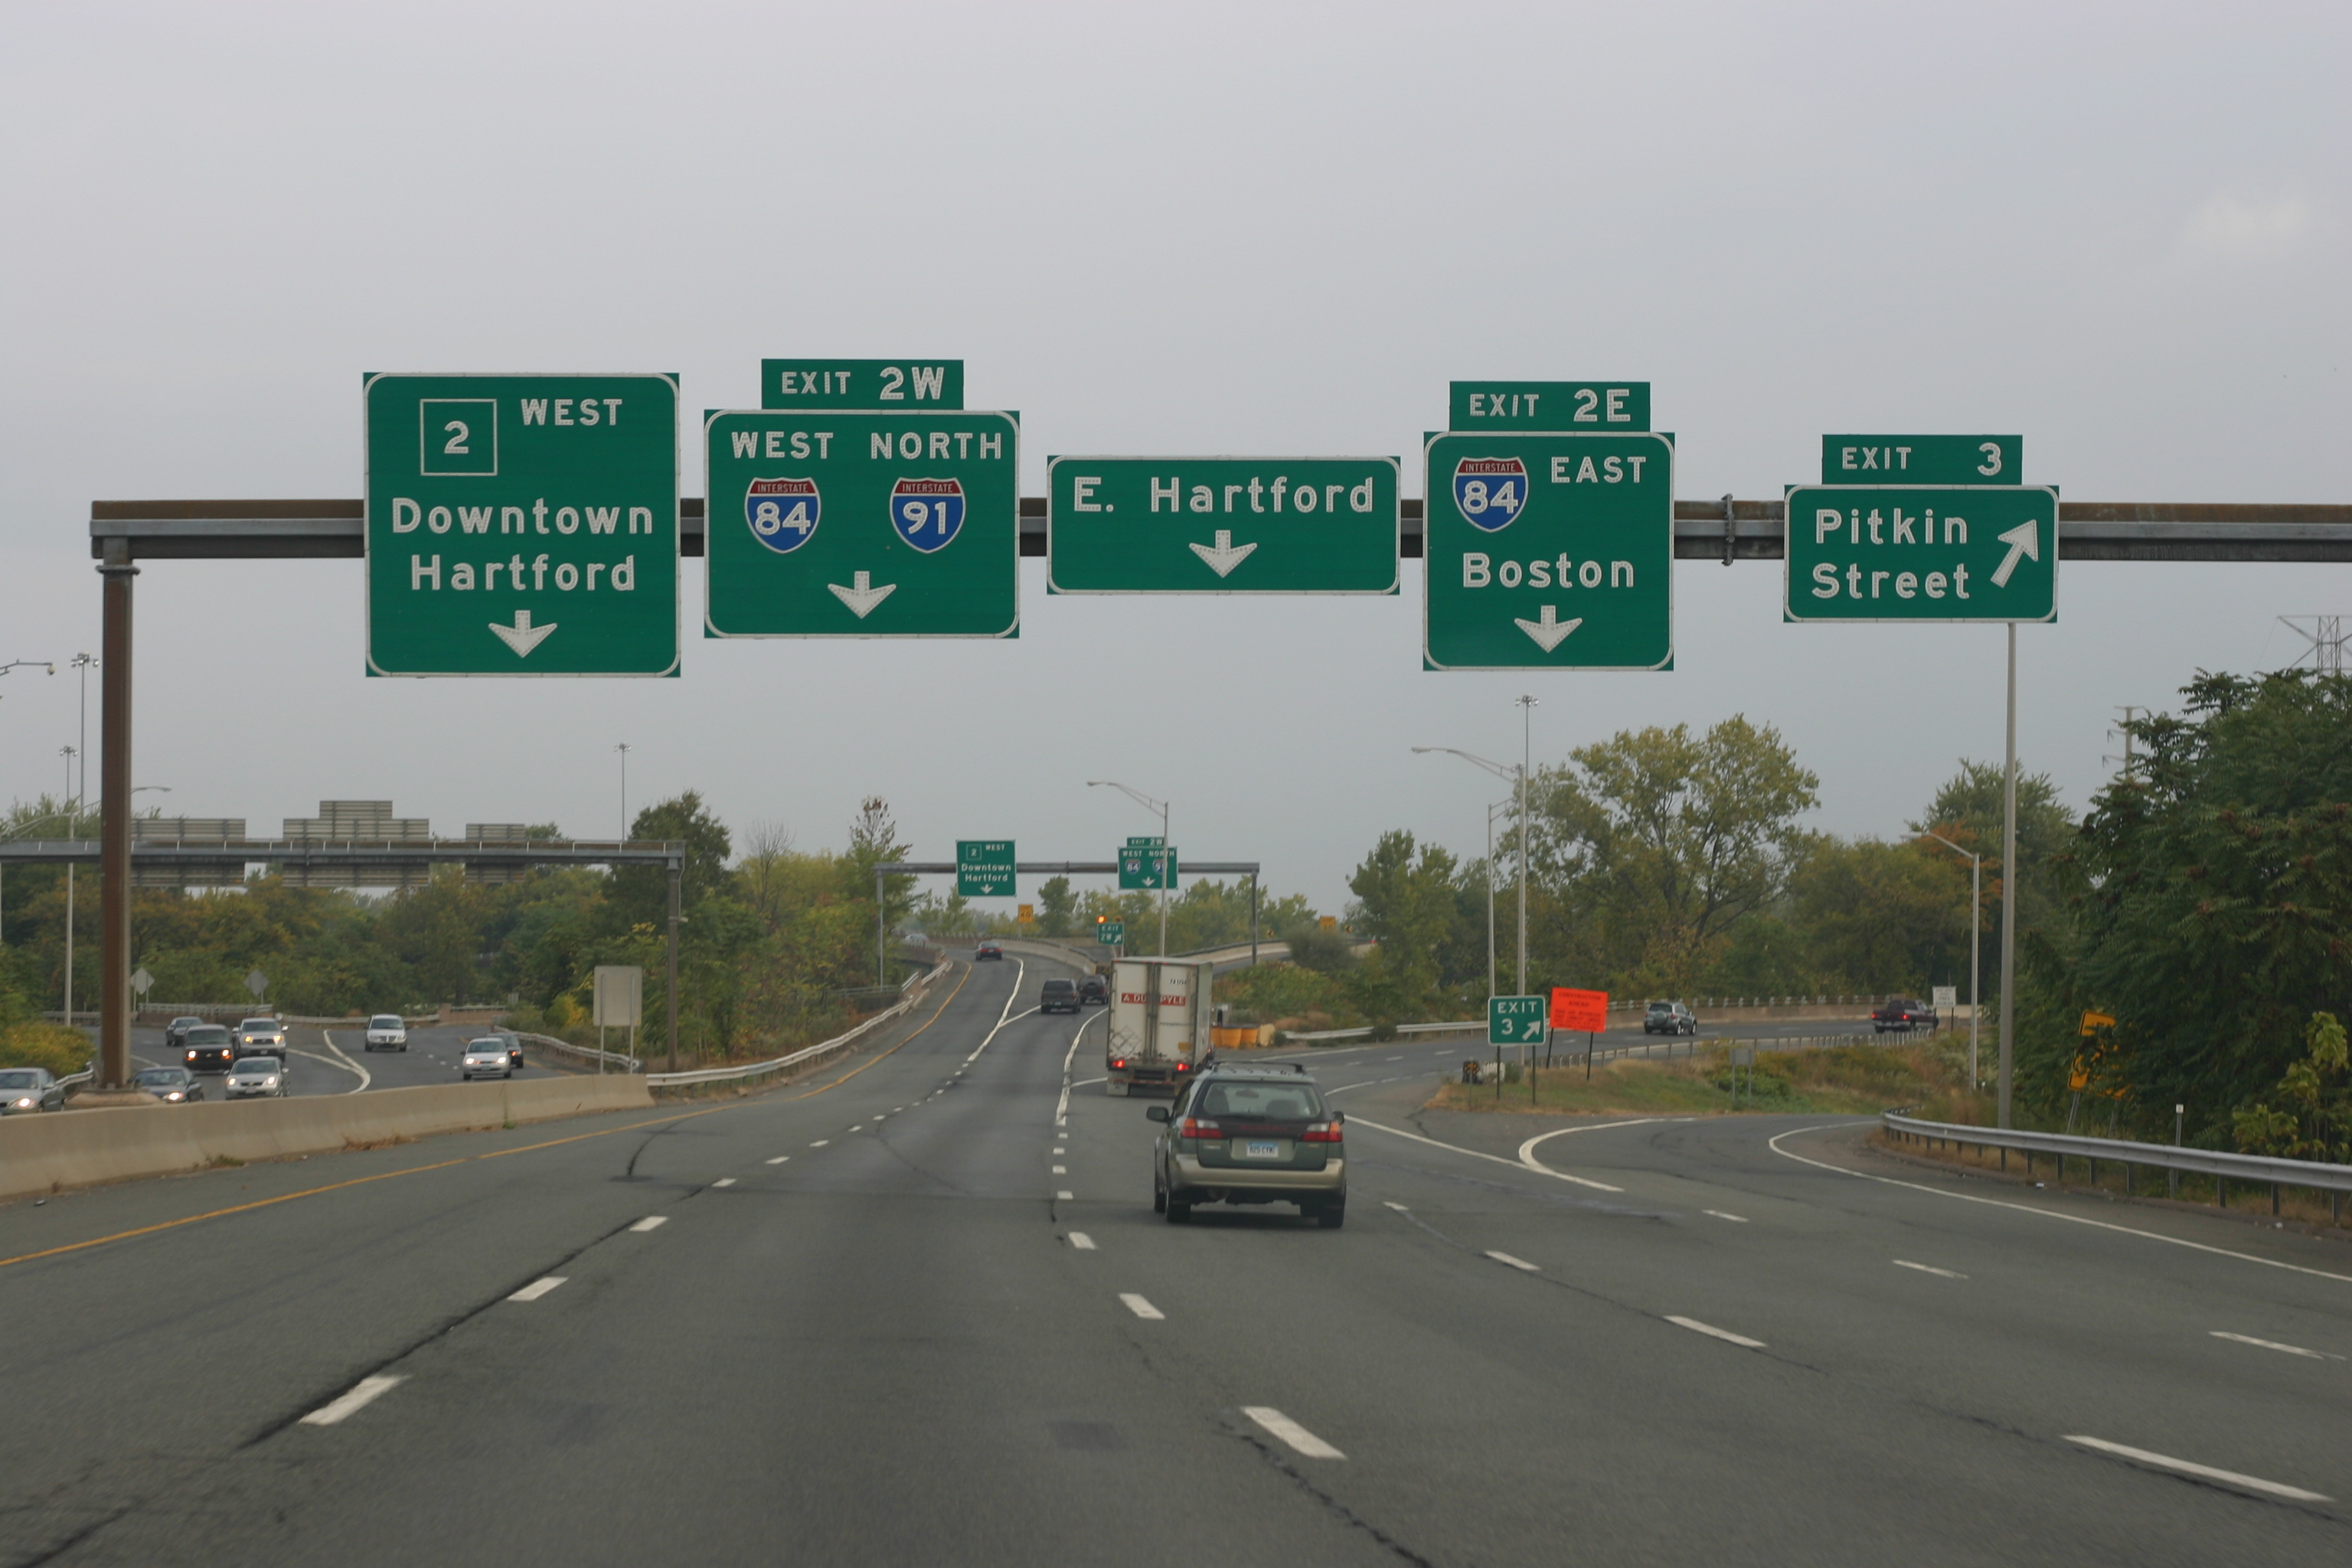 Route 84 westbound